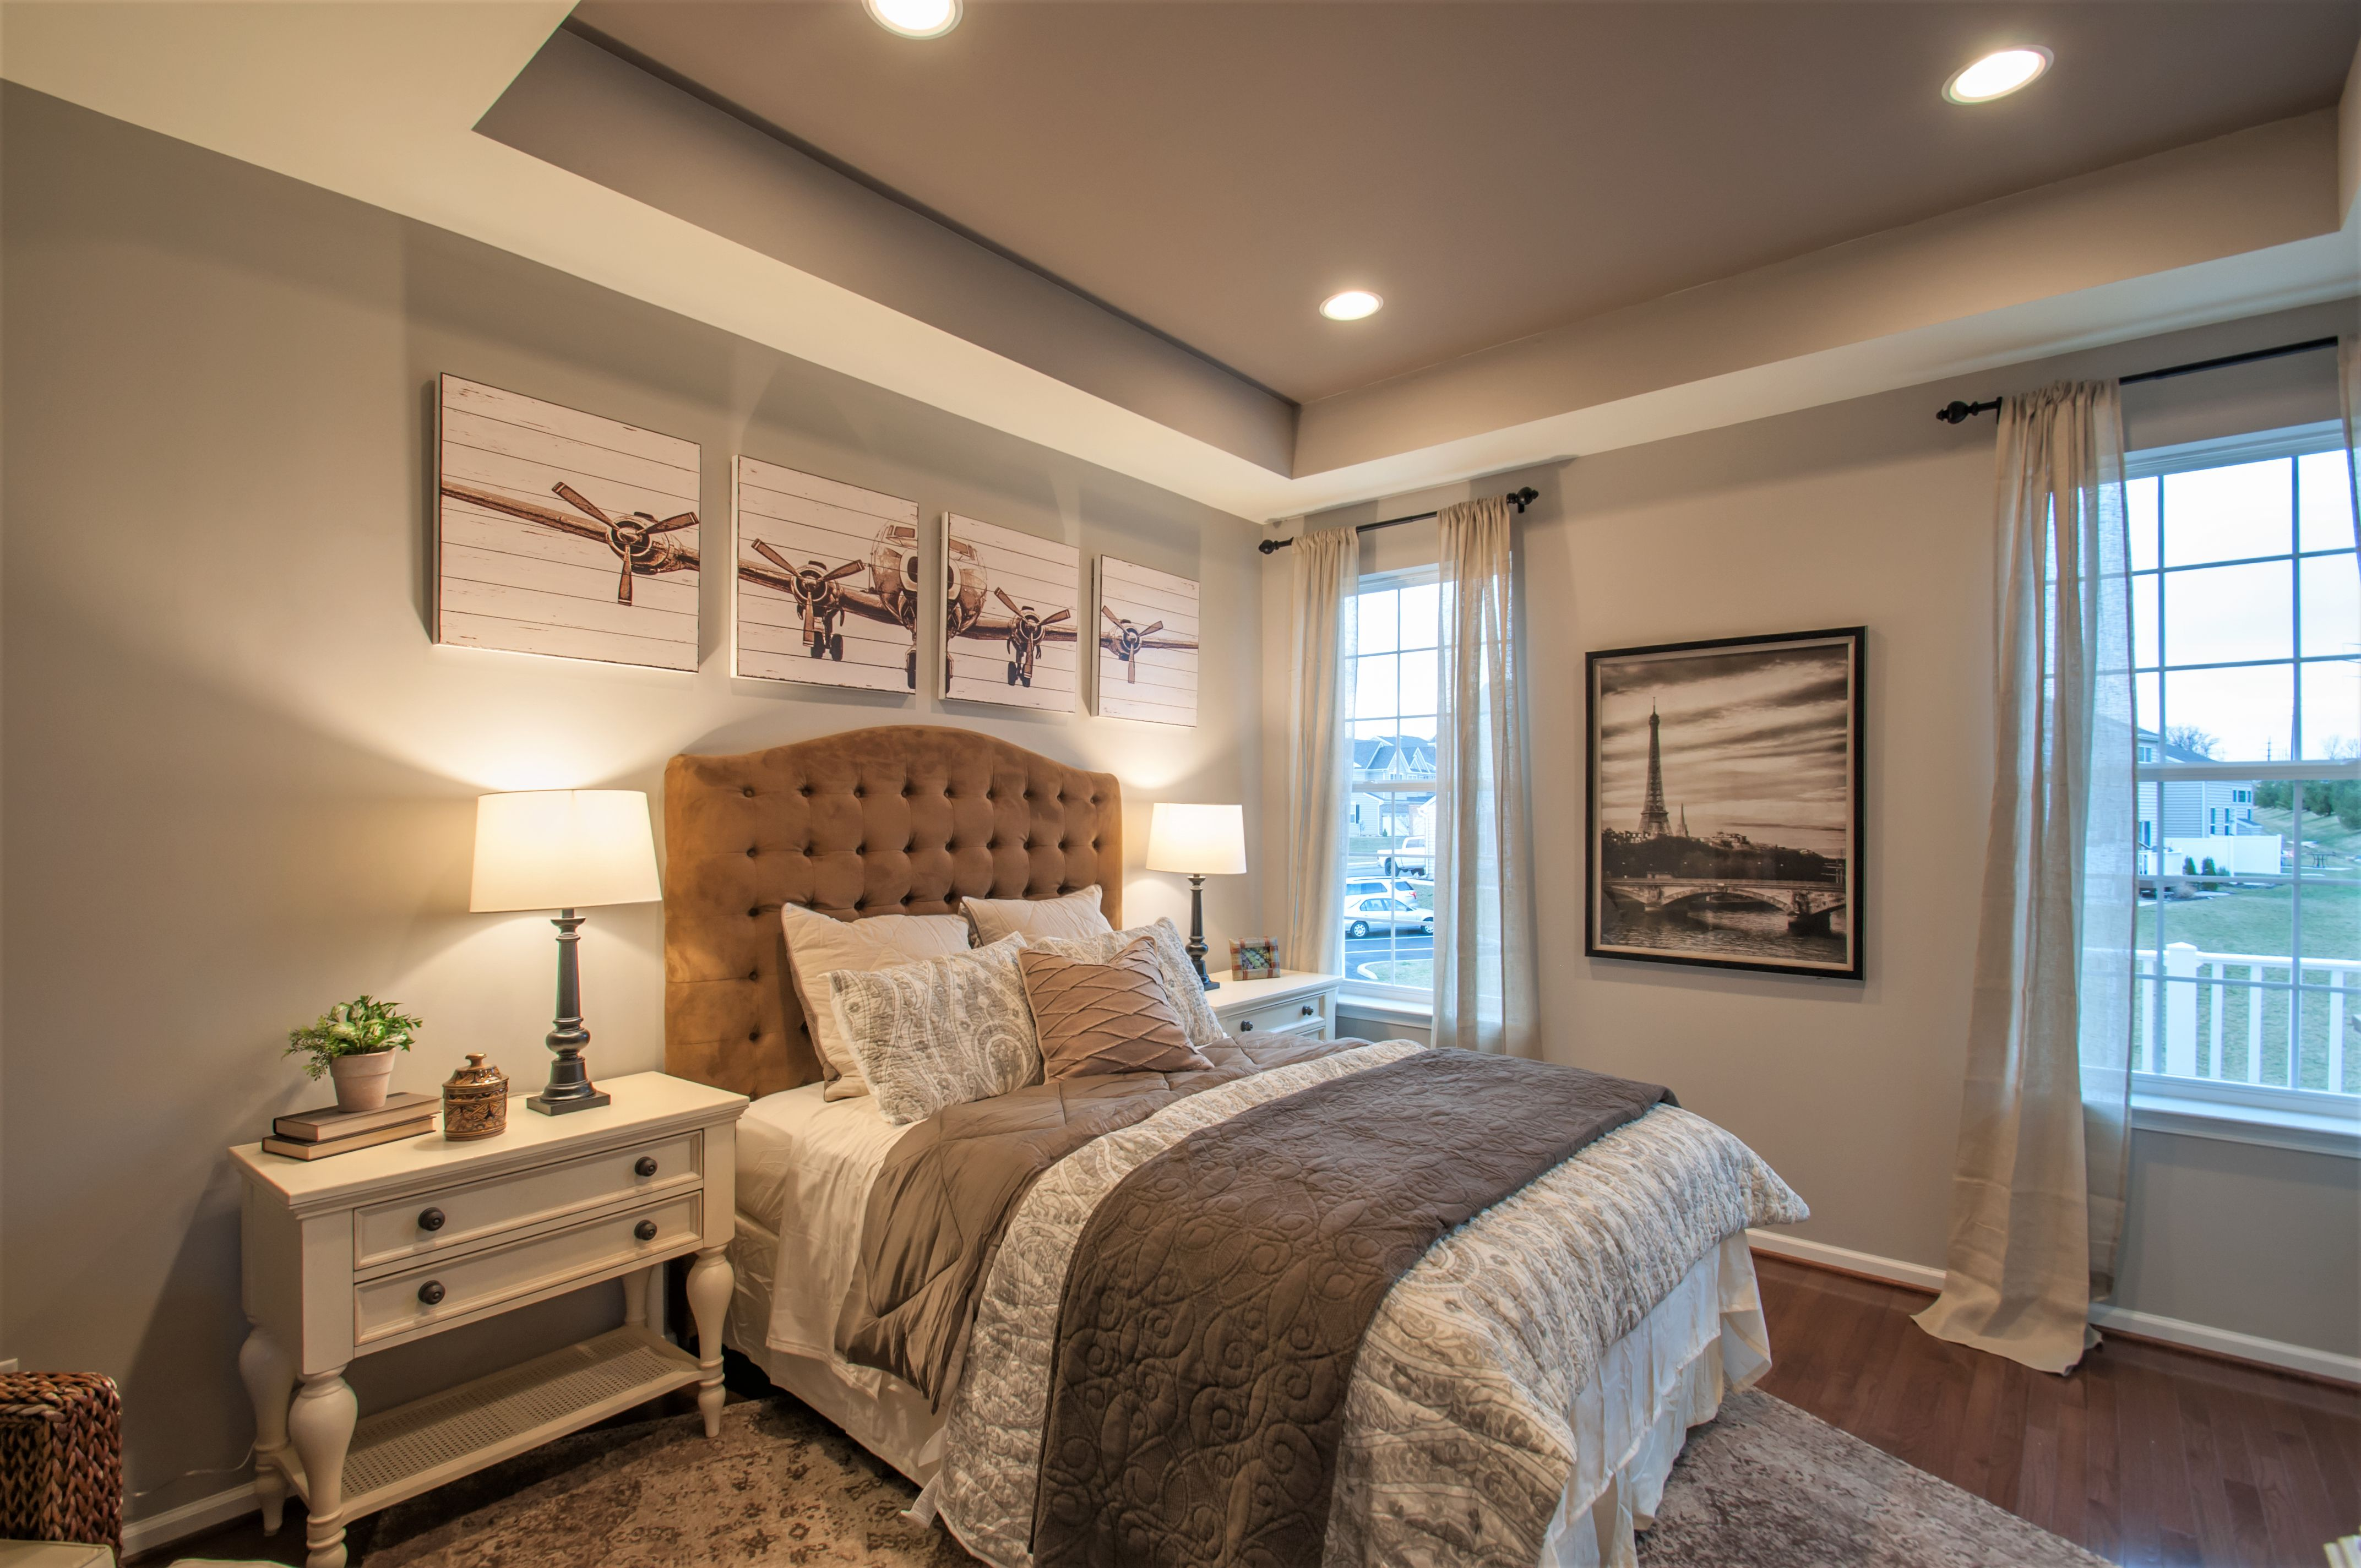 Bedroom featured in the Monarch By Sal Lapio Homes in Allentown-Bethlehem, PA